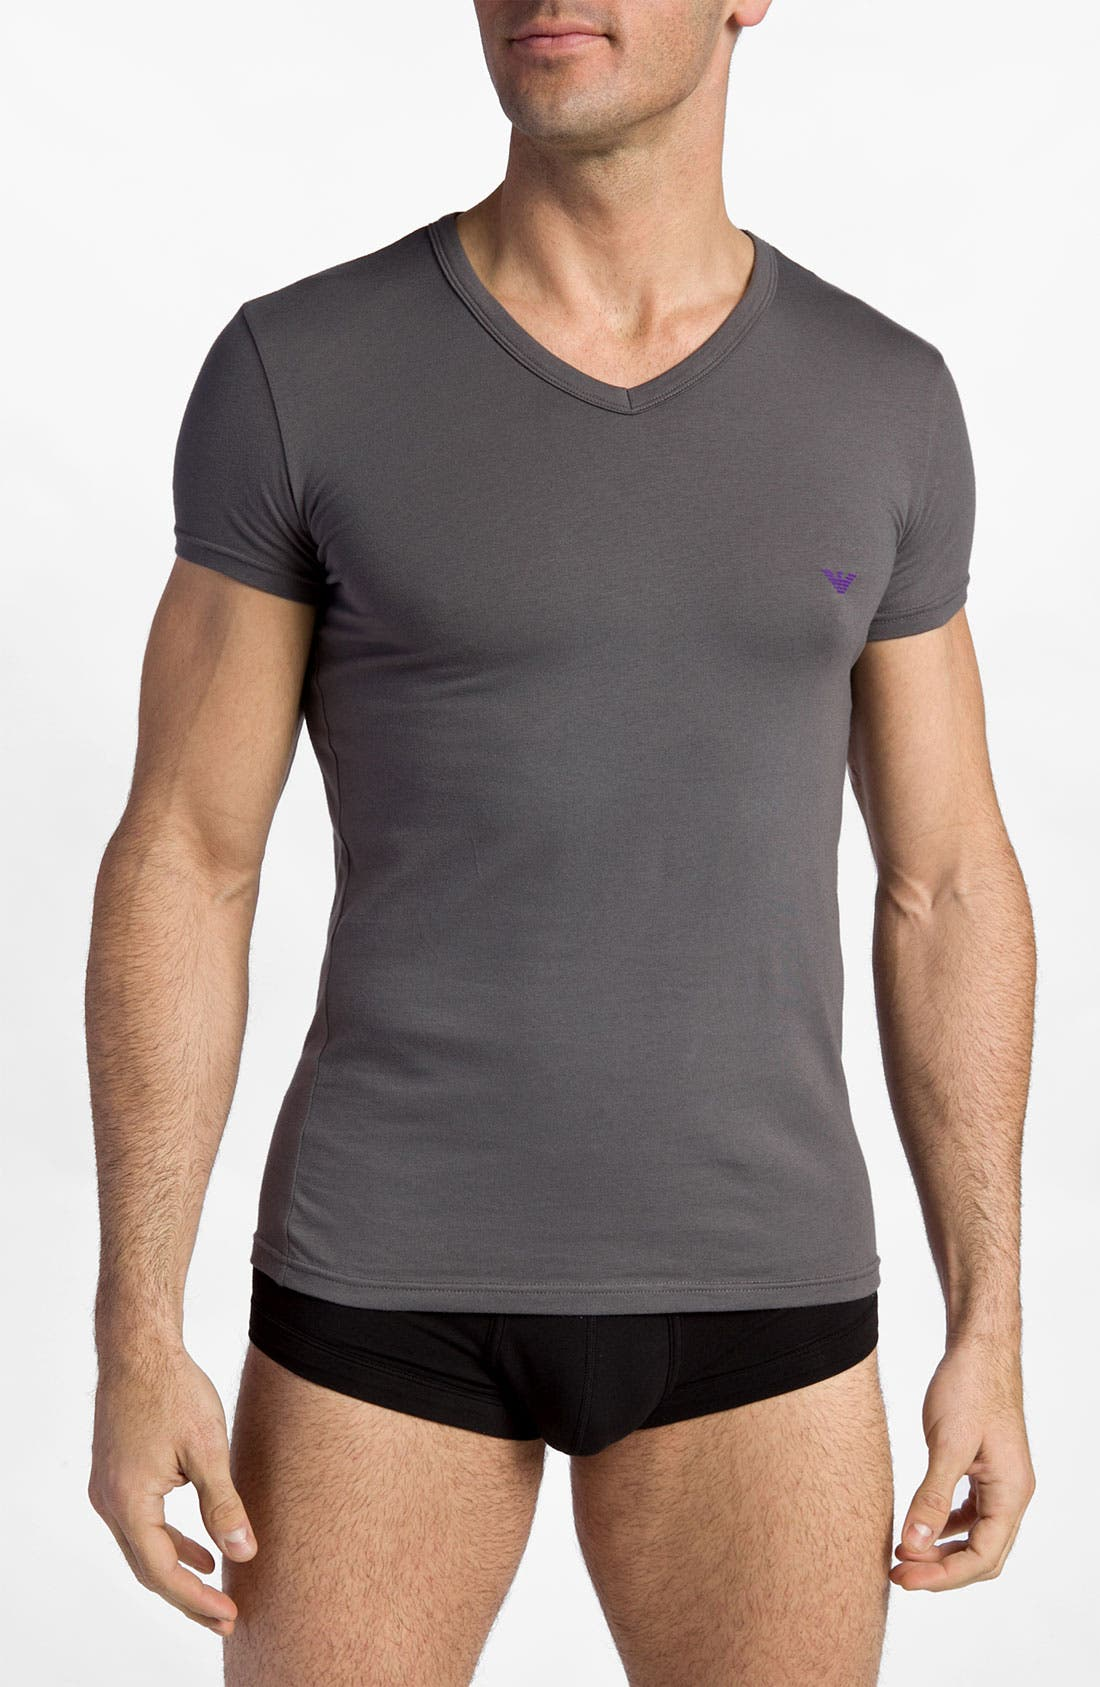 Alternate Image 1 Selected - Emporio Armani Stretch Cotton V-Neck T-Shirt